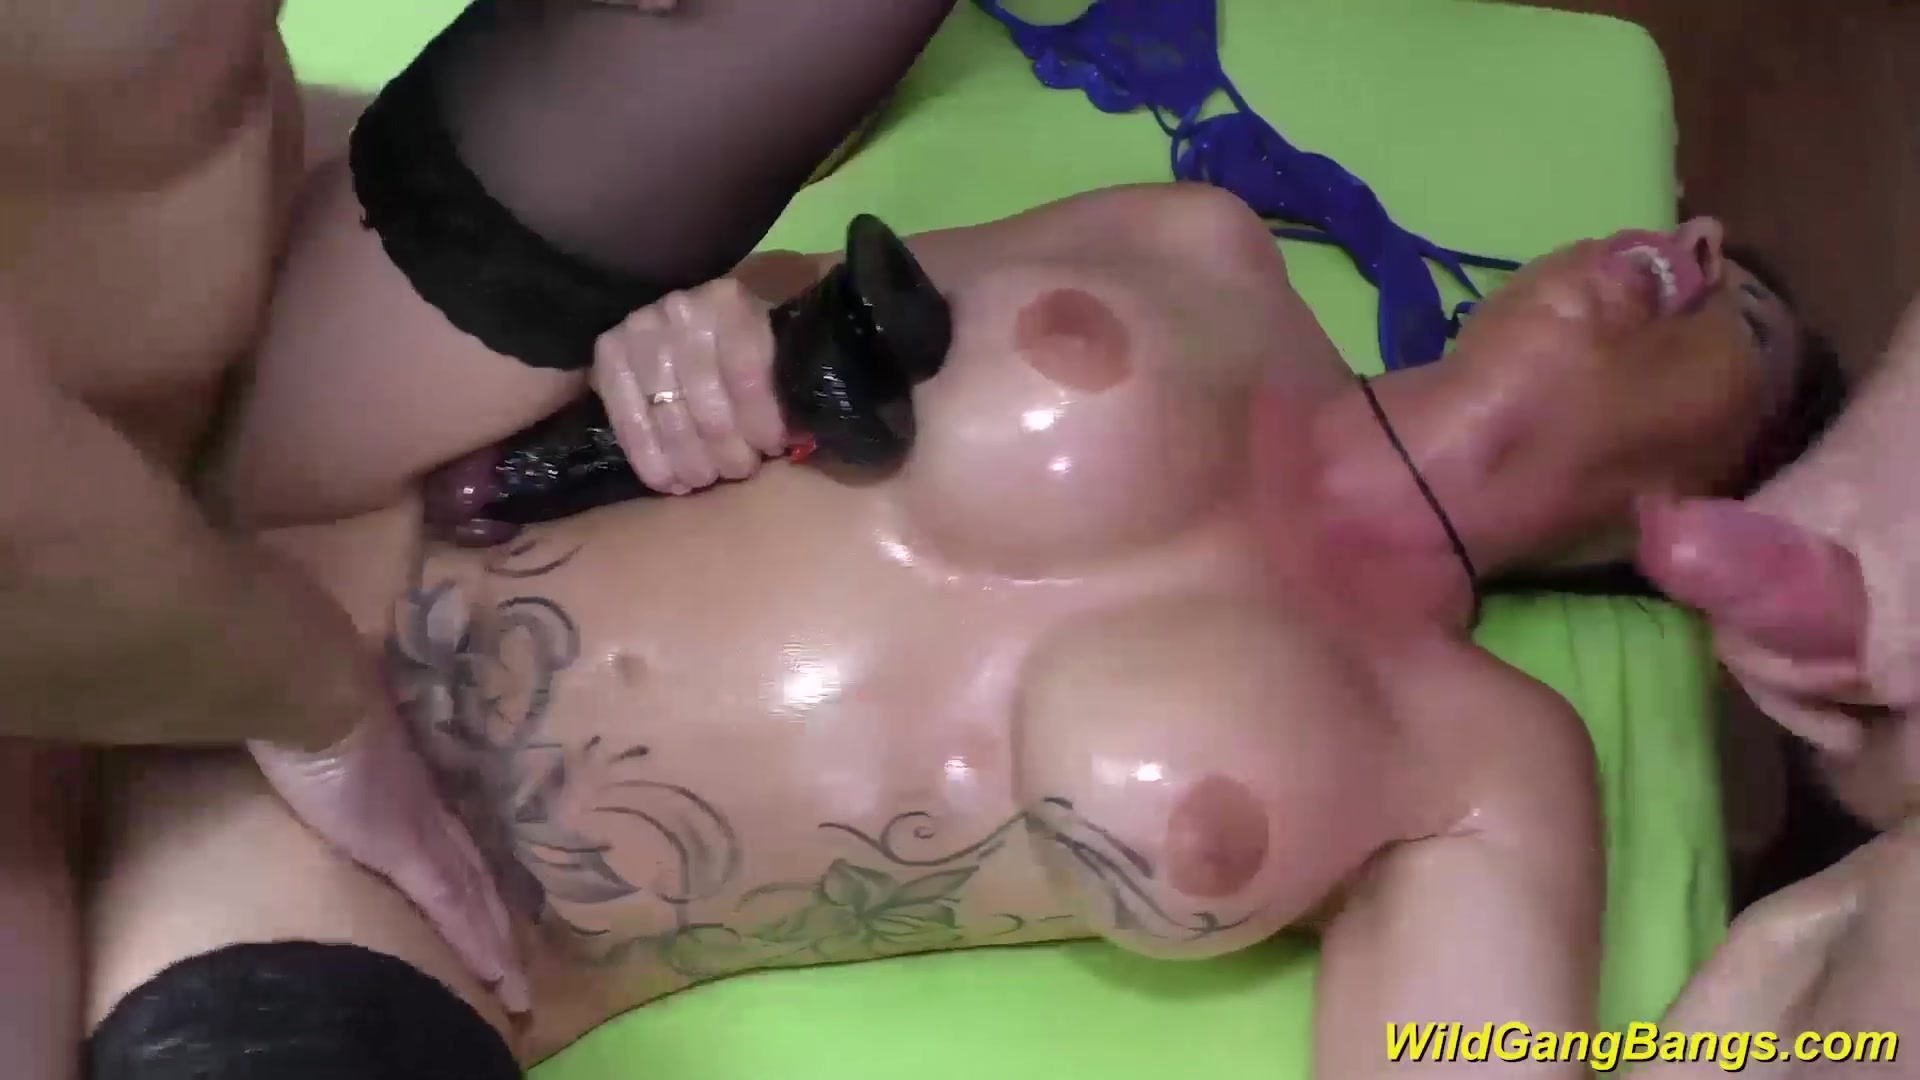 apologise, but, opinion, best deepthroat blowjobs ever hope, you will